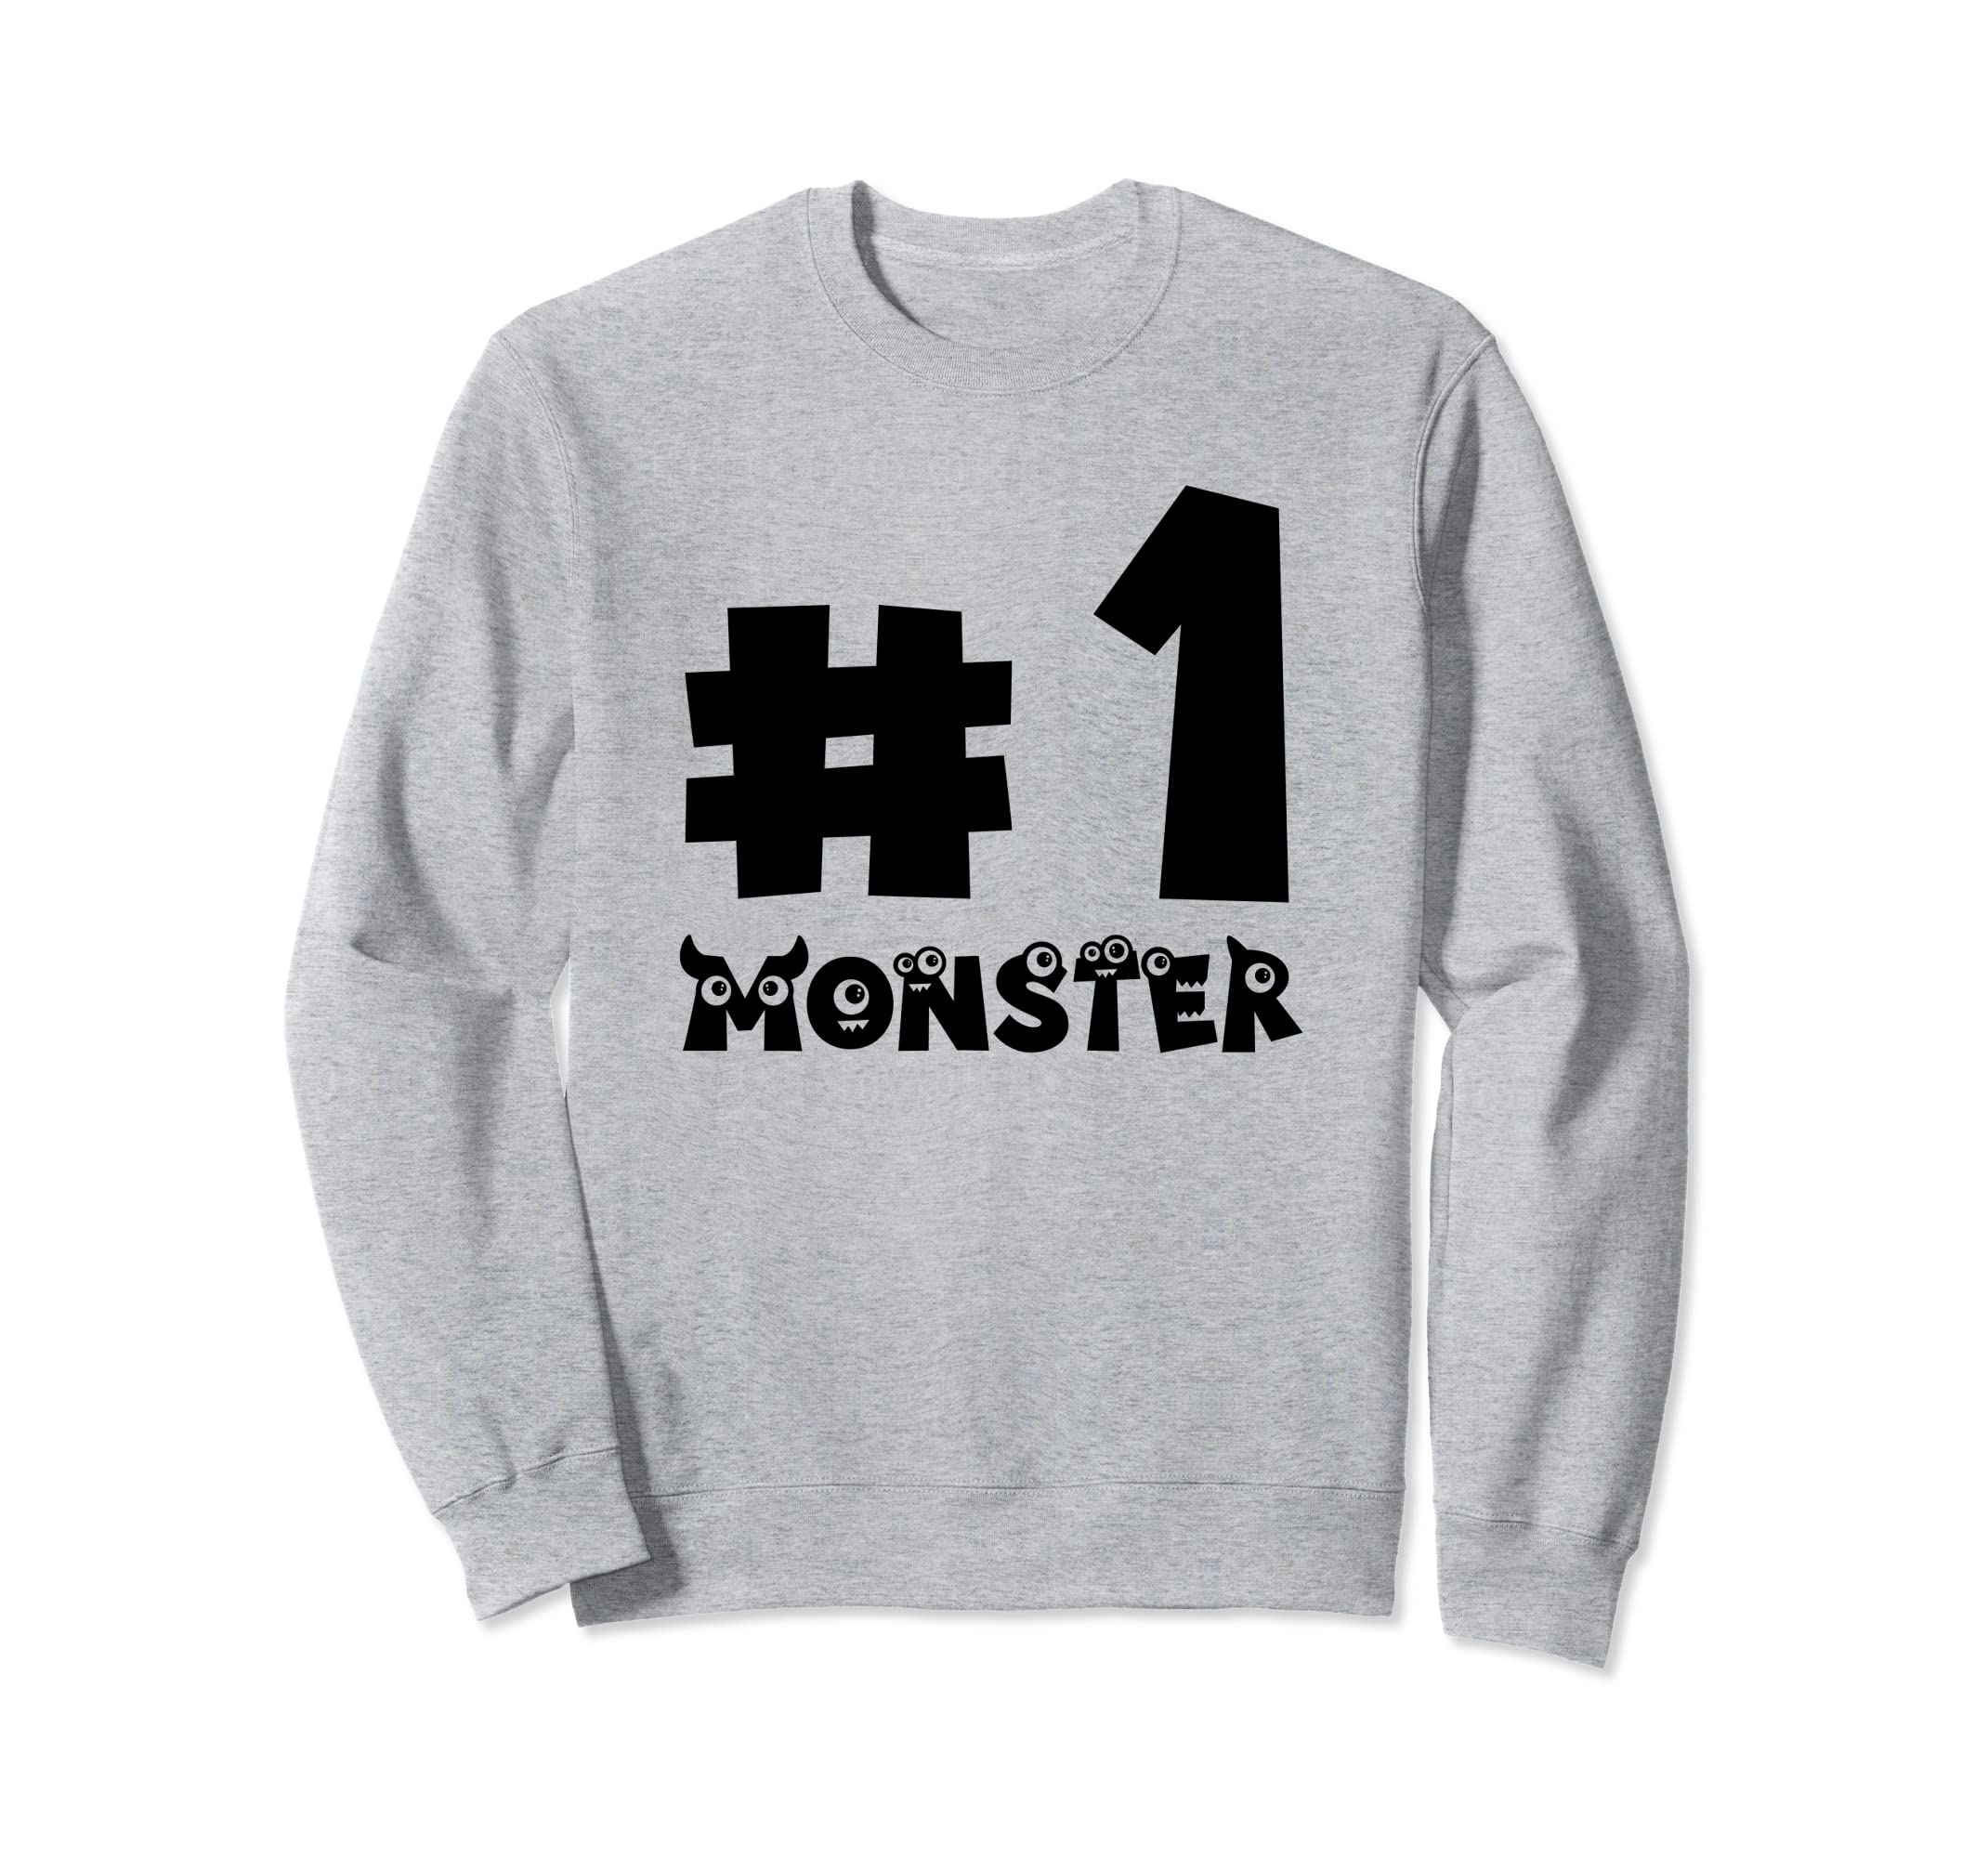 #1 Monster Funny Halloween Costume Shirt For Halloween-Rose